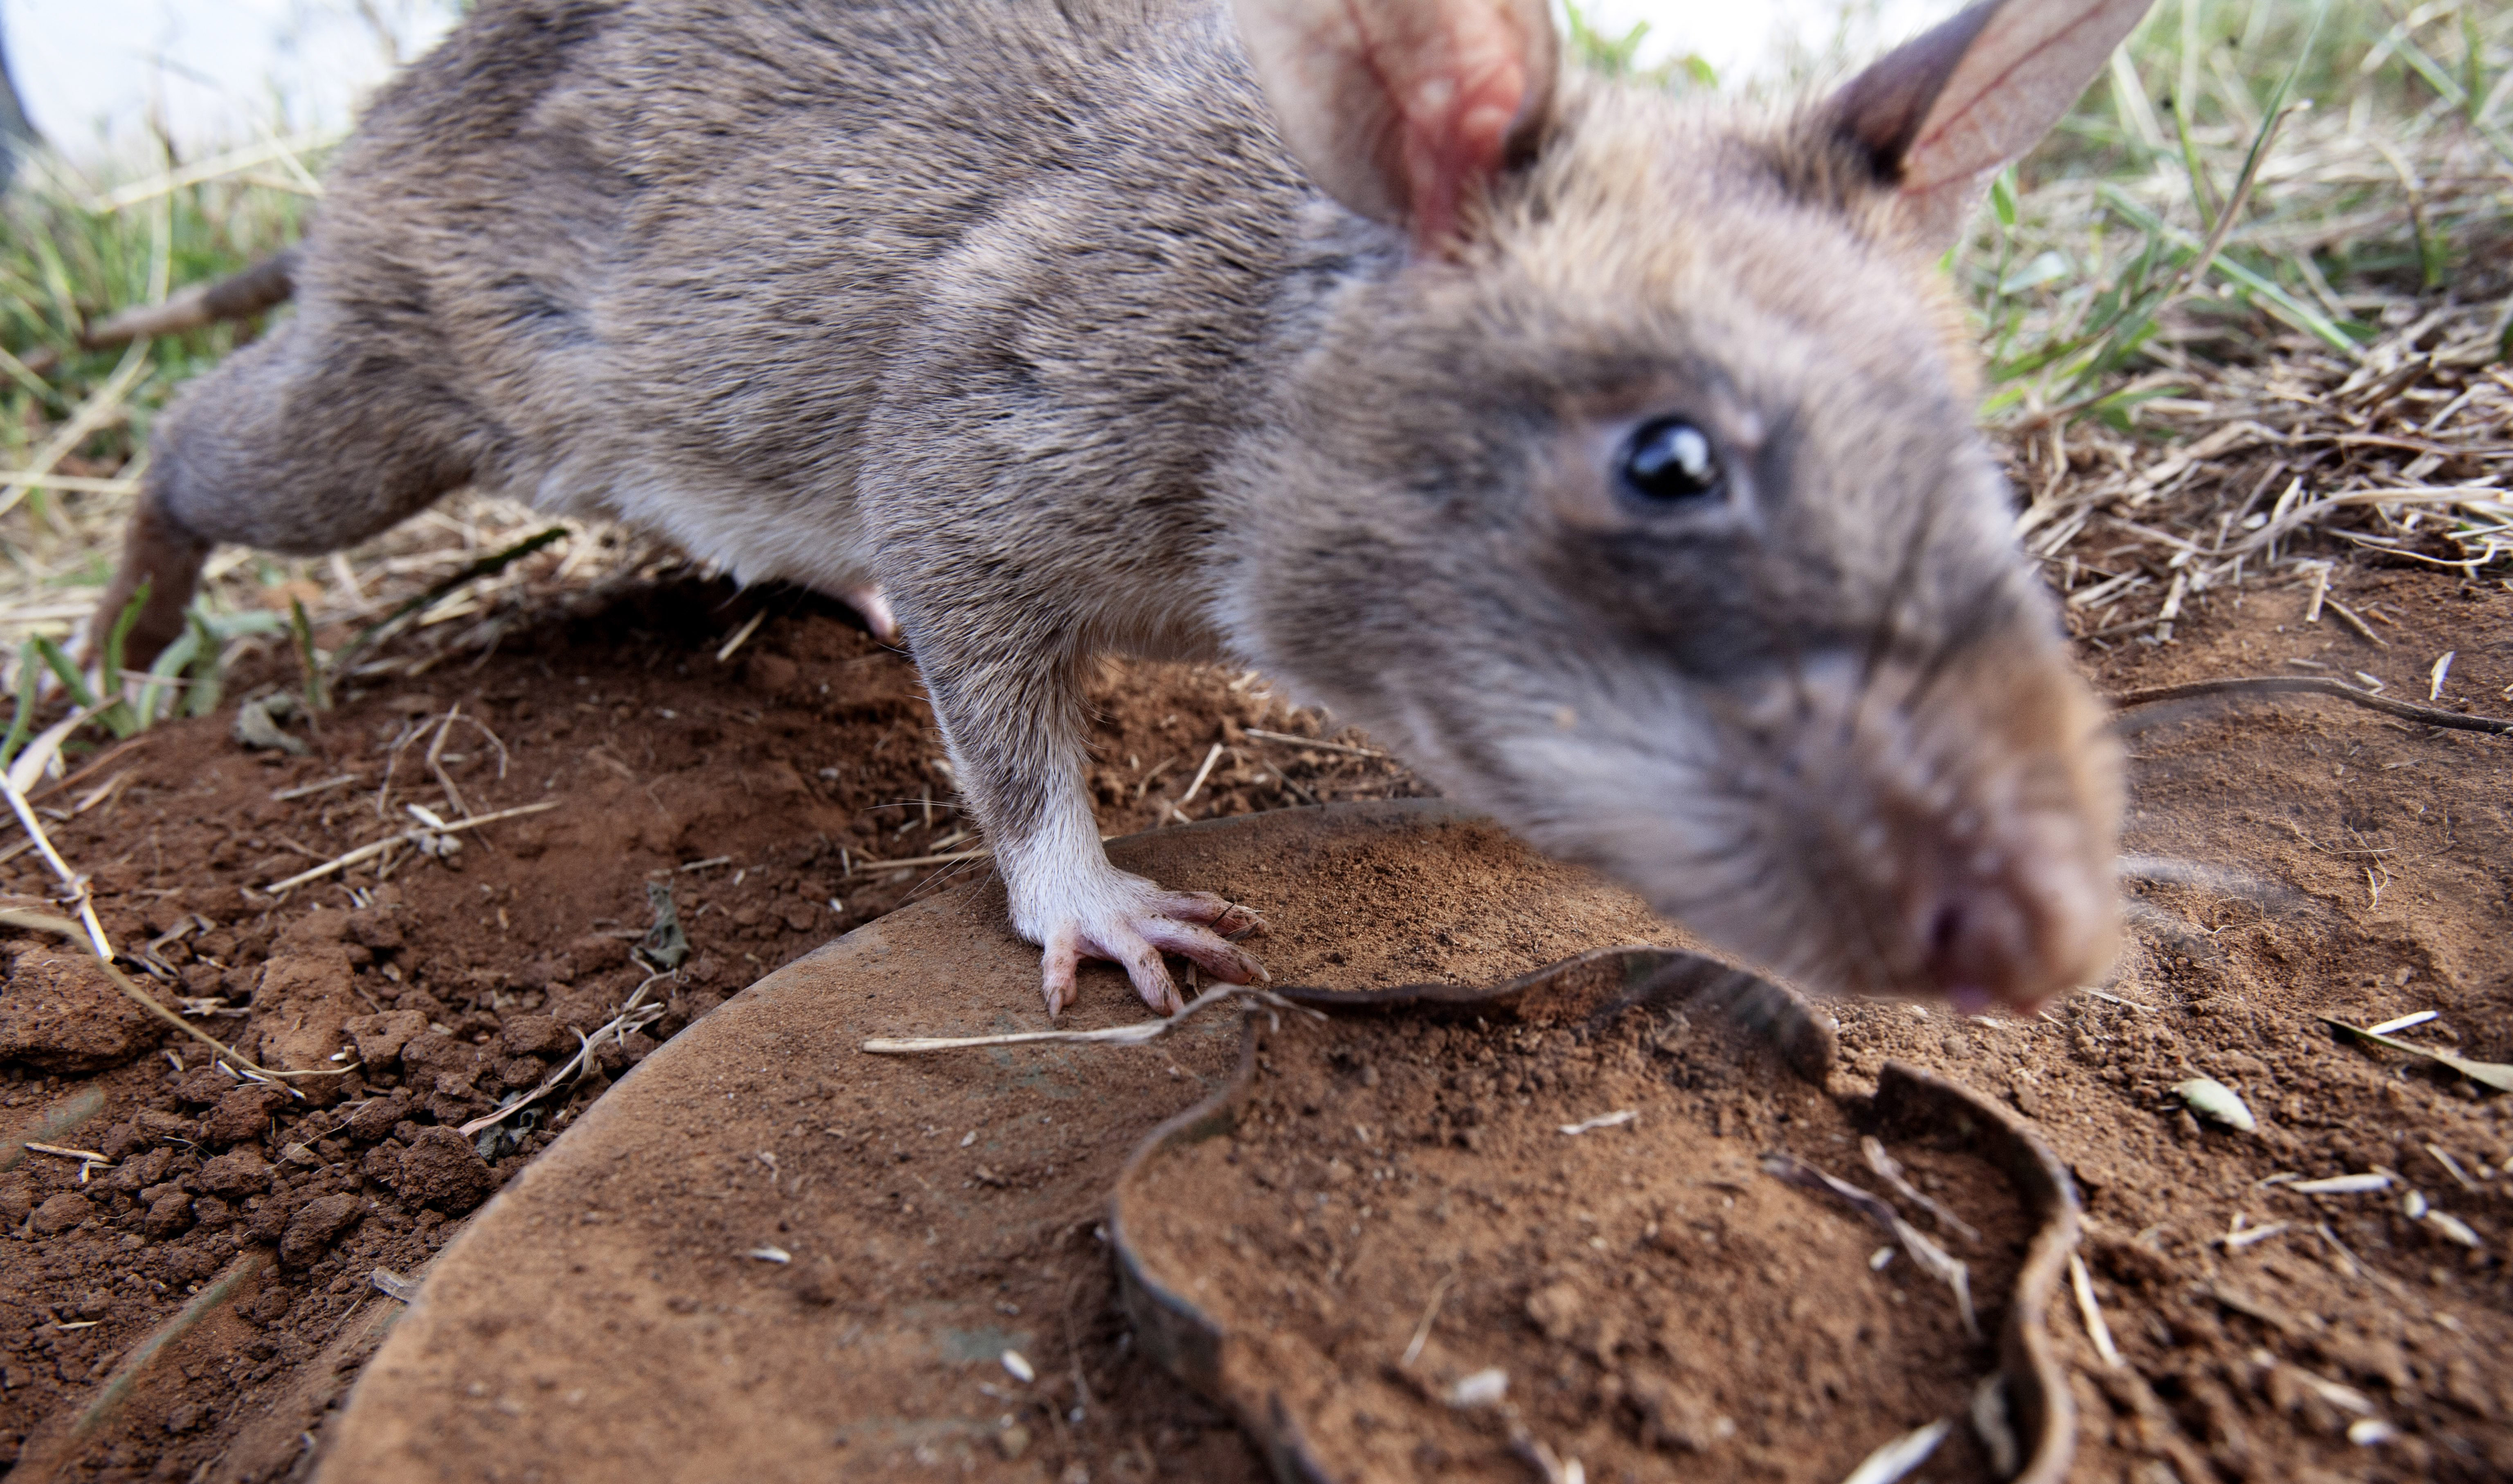 A HeroRAT sniffs out a mine on June 20, 2014 in Morogoro, Tanzania.